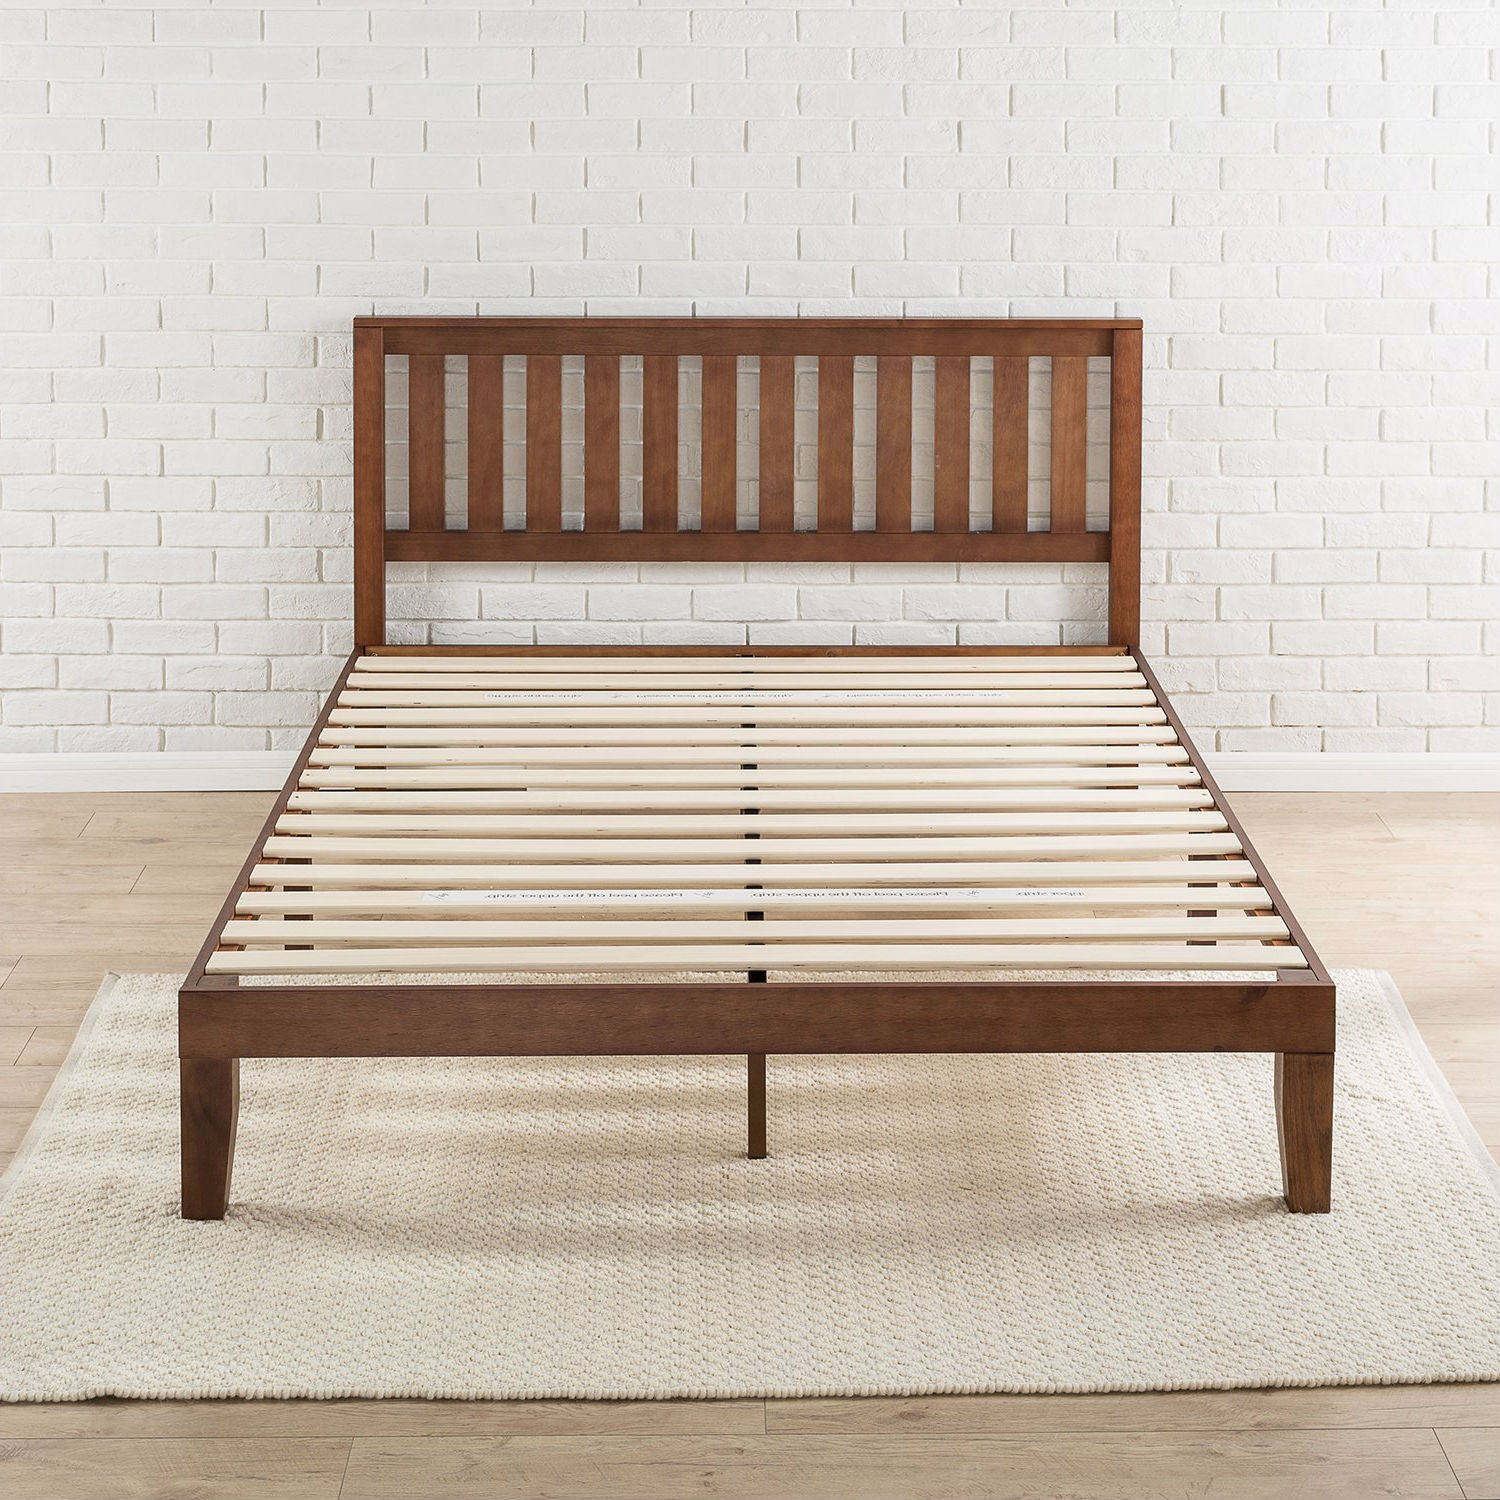 Picture of: Queen Size Mission Style Solid Wood Platform Bed Frame With Headboard In Espresso Finish Fastfurnishings Com